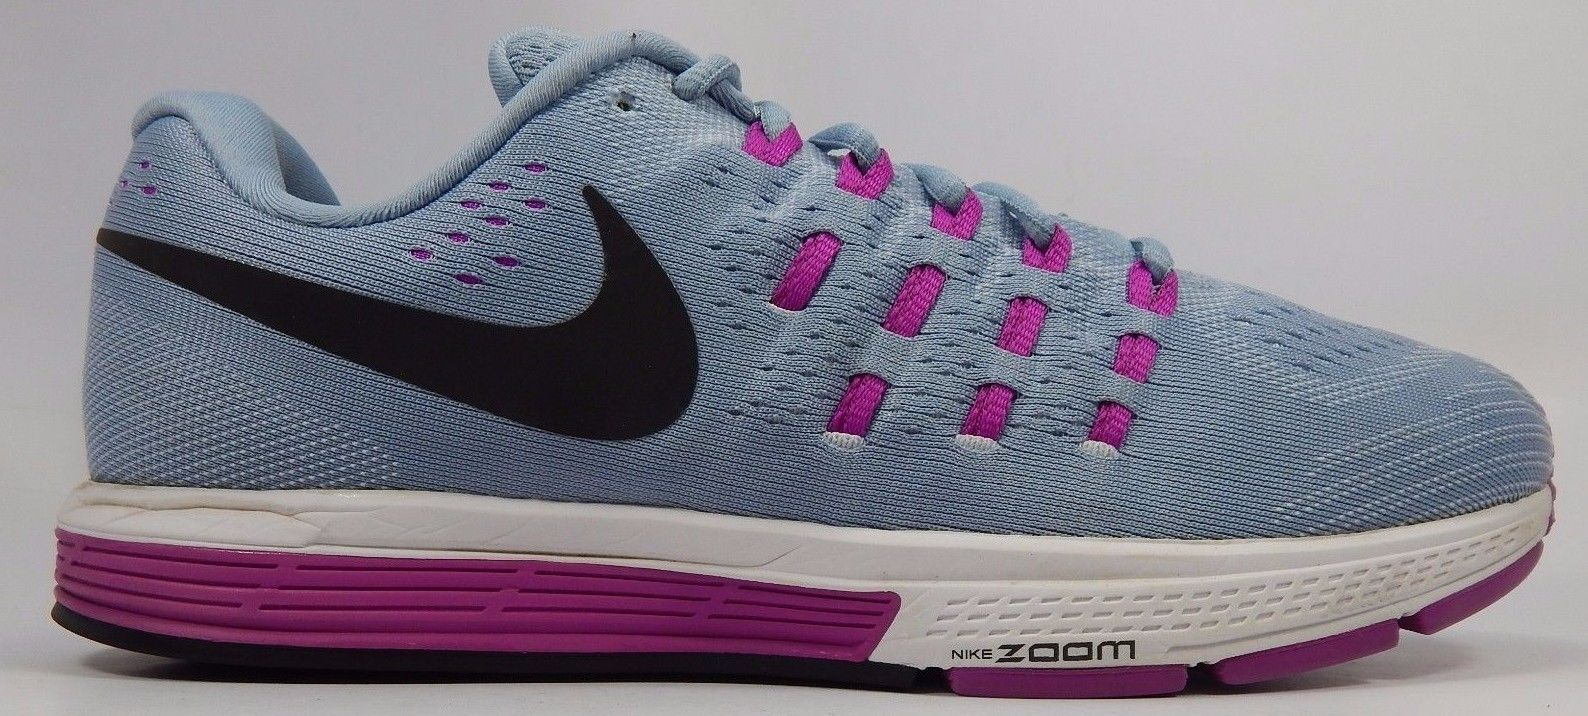 Nike Air Zoom Vomero 11 Women's Running Shoes Size US 11 D WIDE EU 43 829642-405